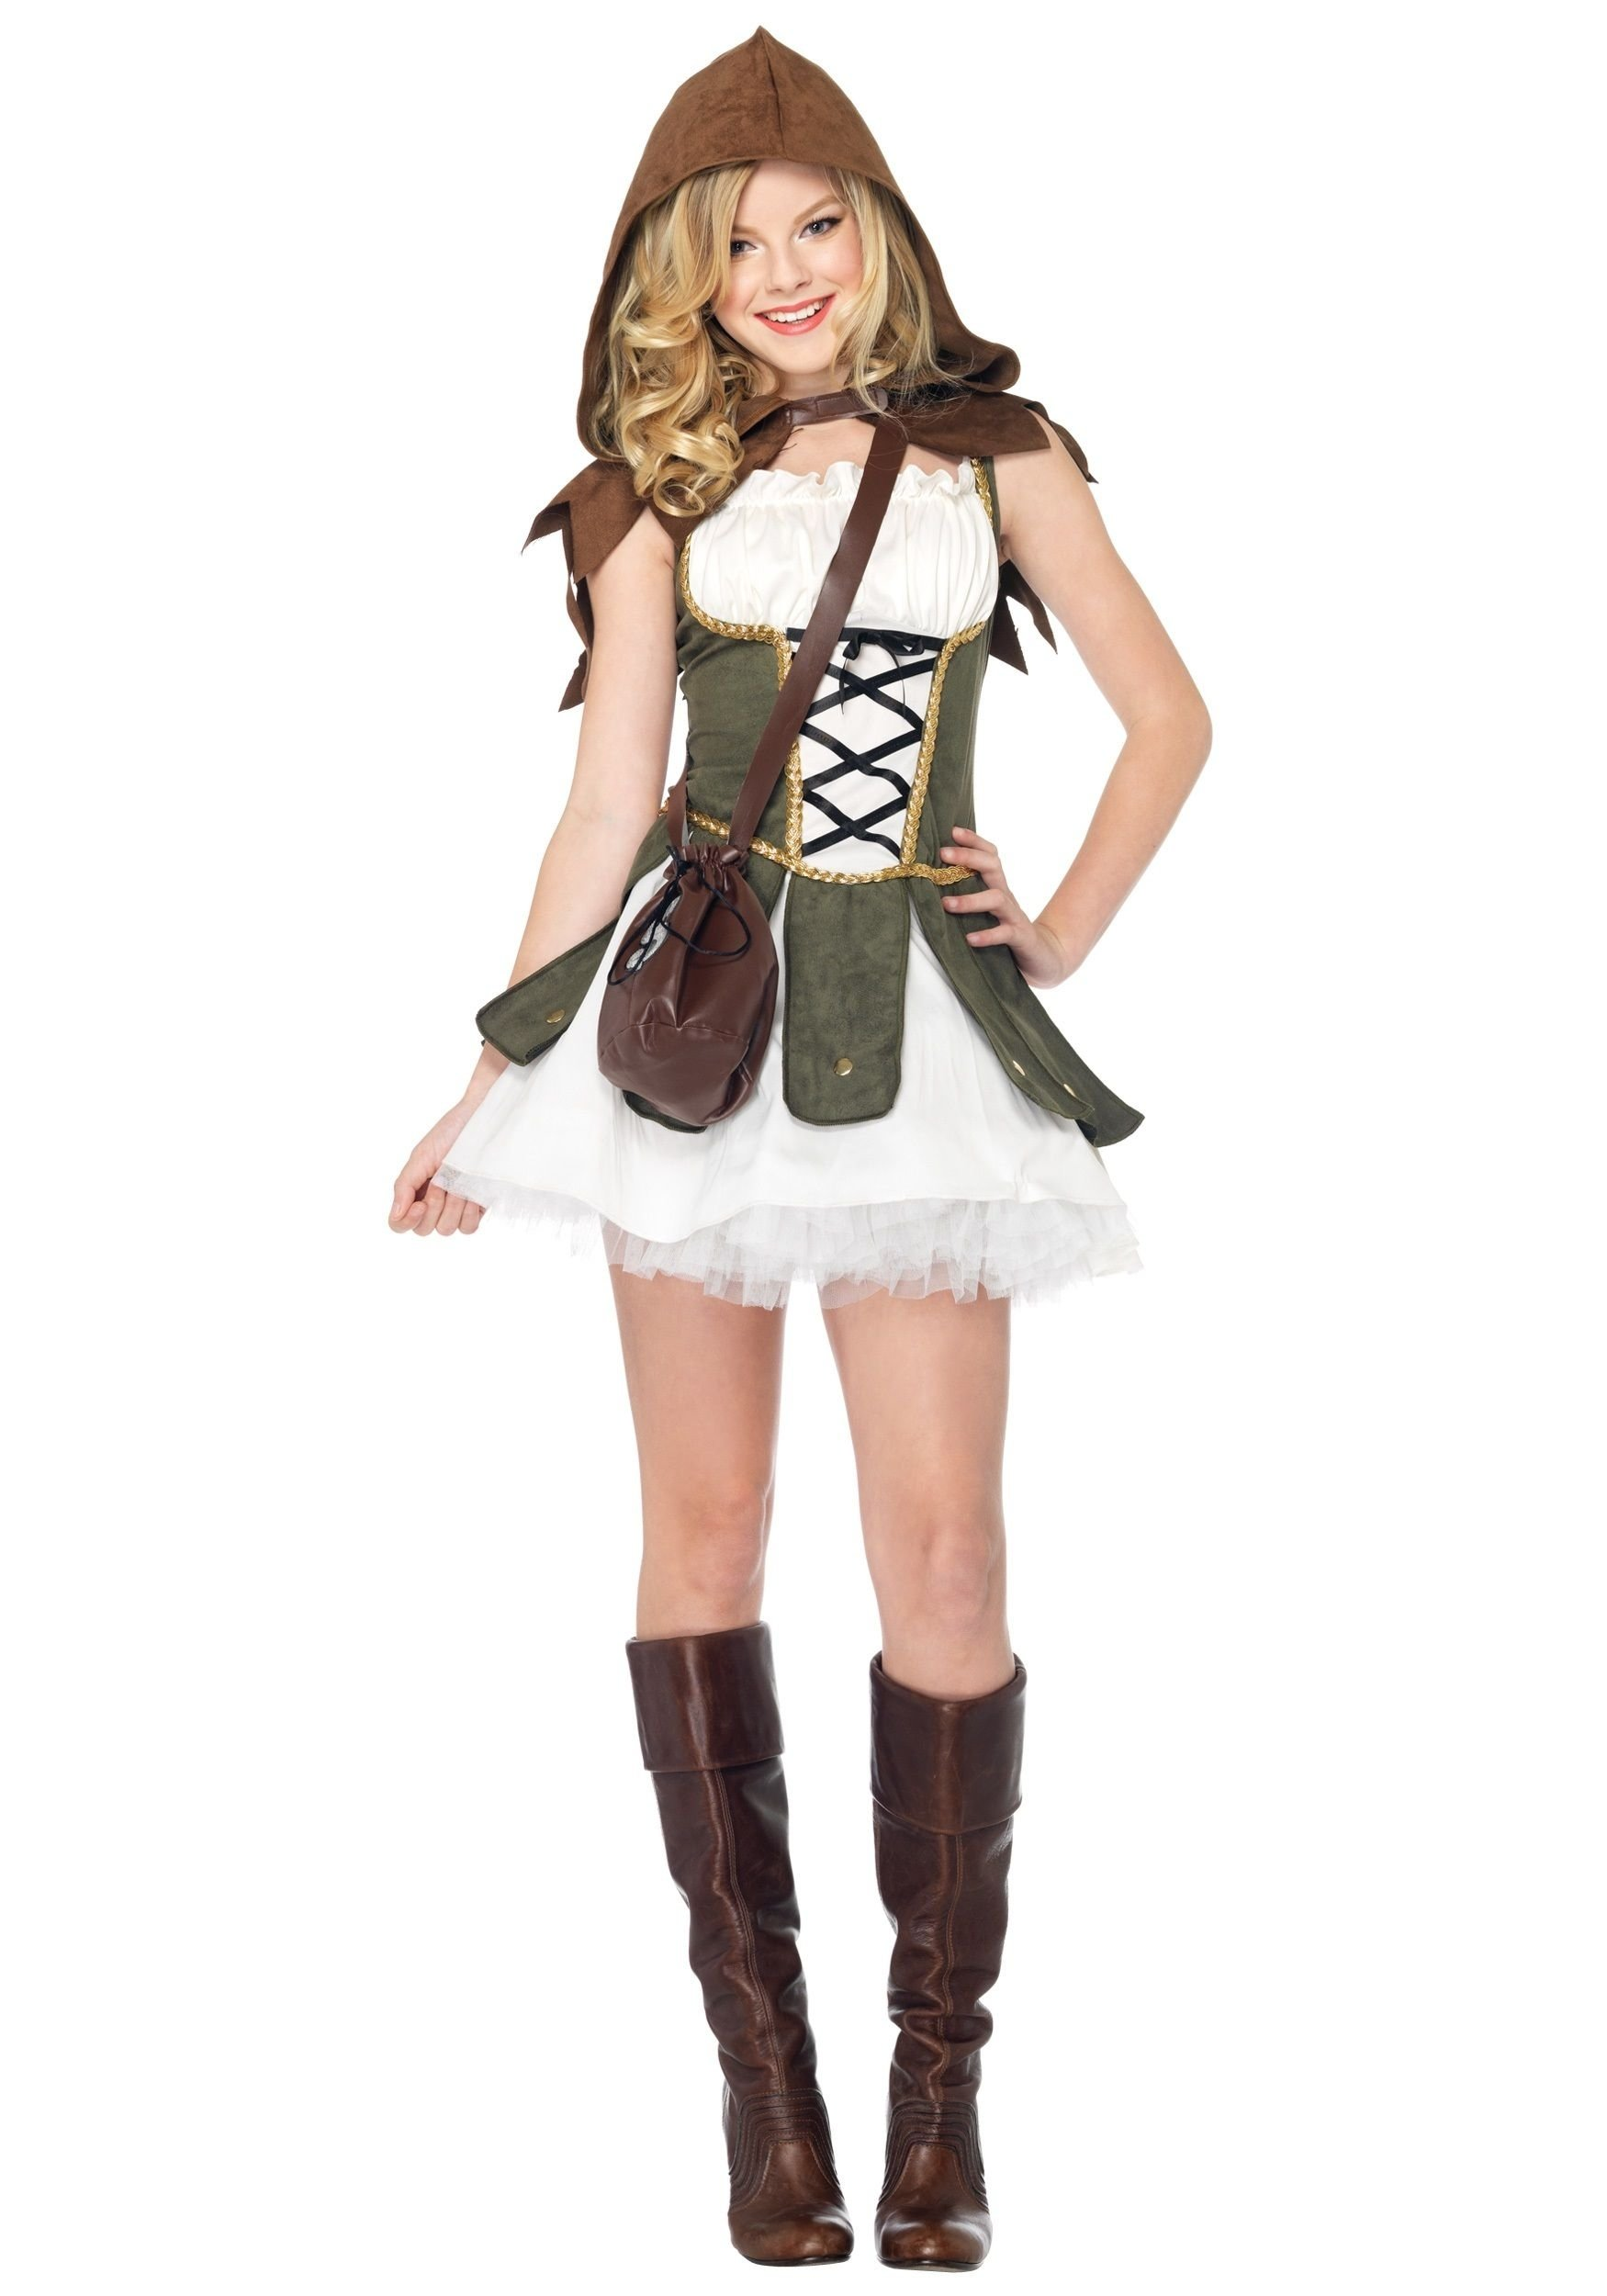 10 Stylish Costume Ideas For Tween Girls teengirlhalloweencostumes halloween costumes and party supplies 4 2020